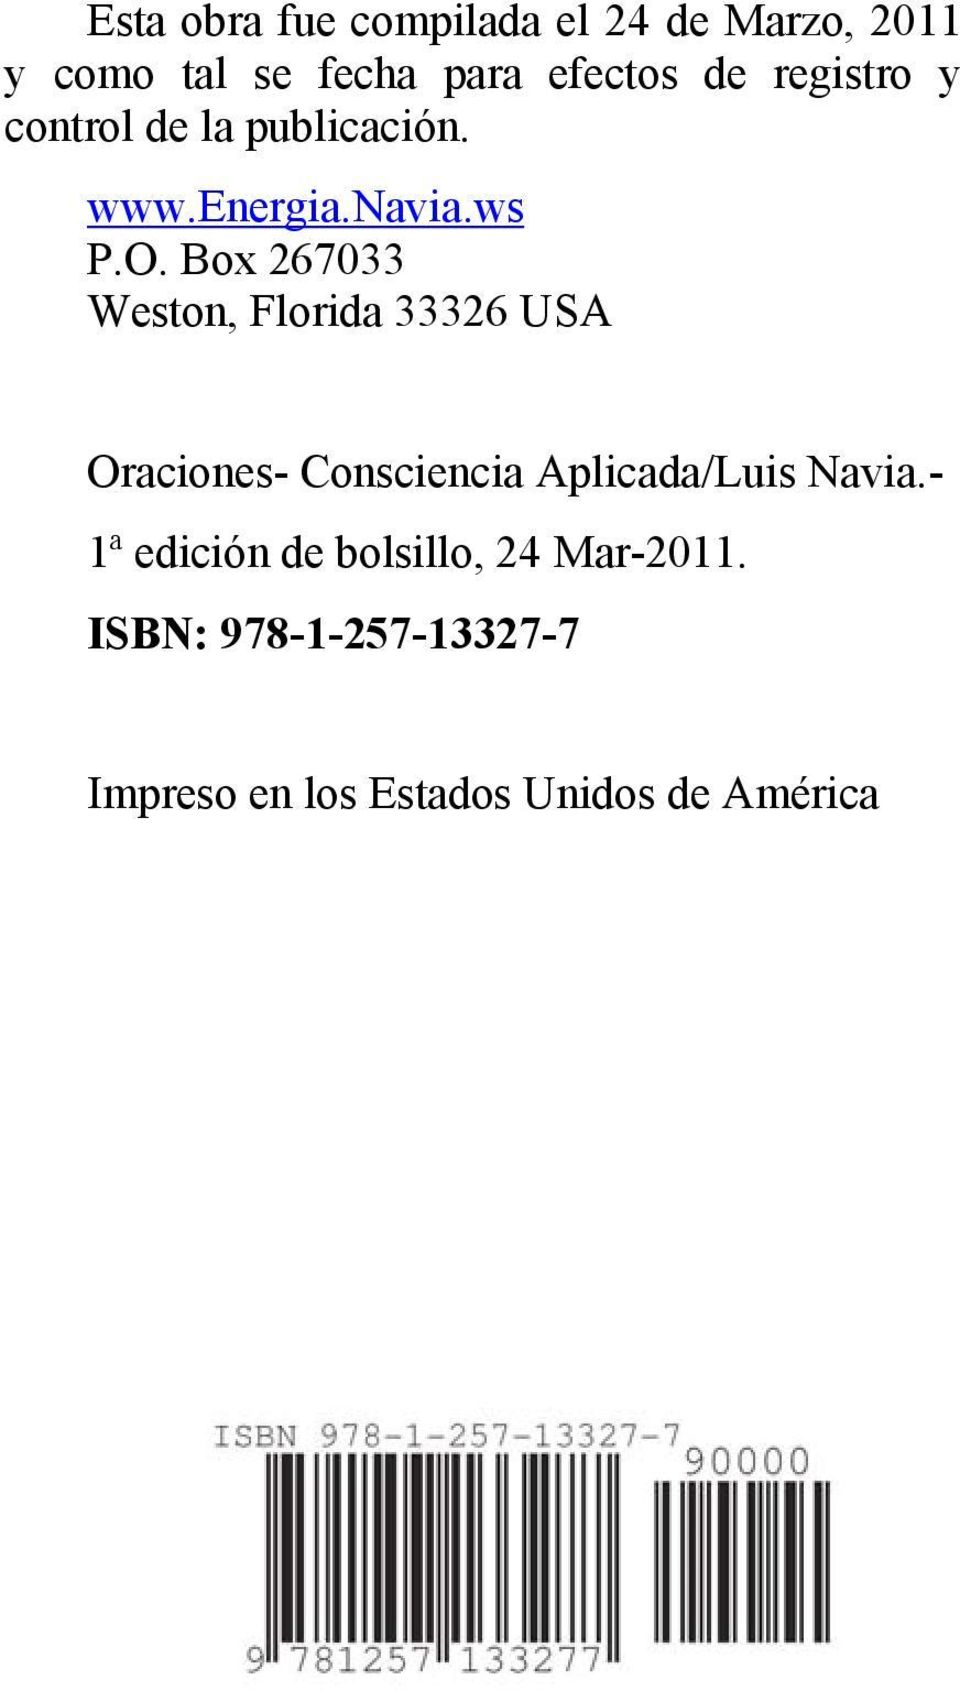 Box 267033 Weston, Florida 33326 USA Oraciones- Consciencia Aplicada/Luis Navia.